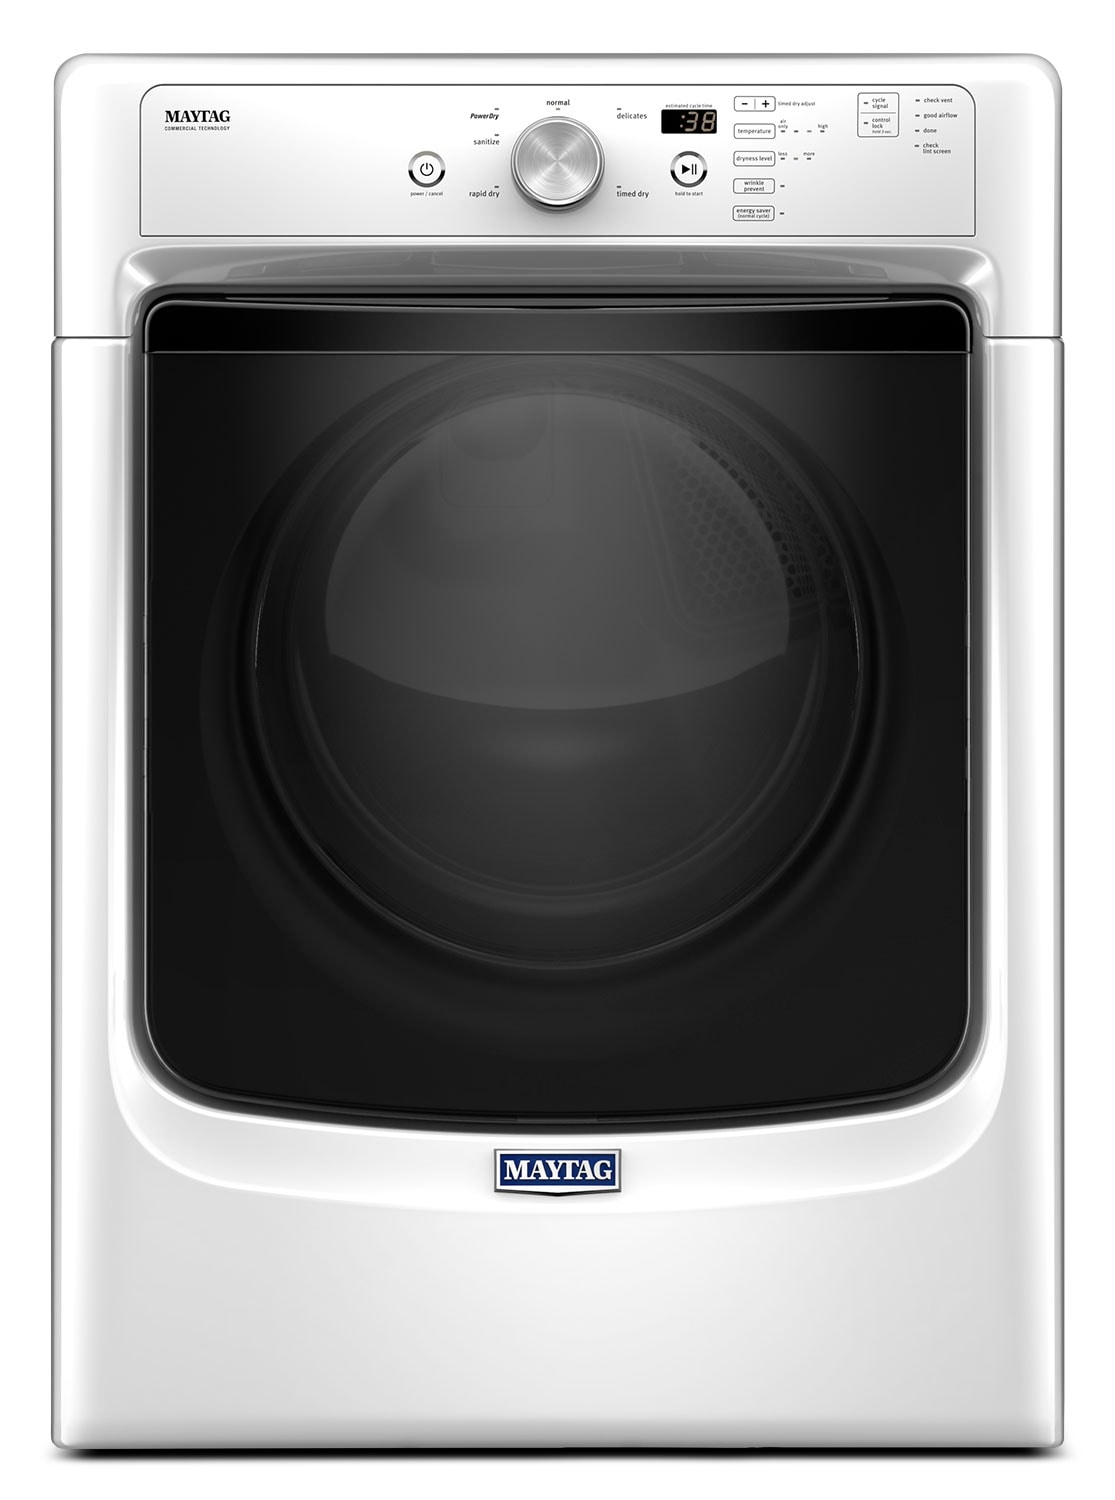 Maytag 7.4 Cu. Ft. Electric Dryer – YMED3500FW